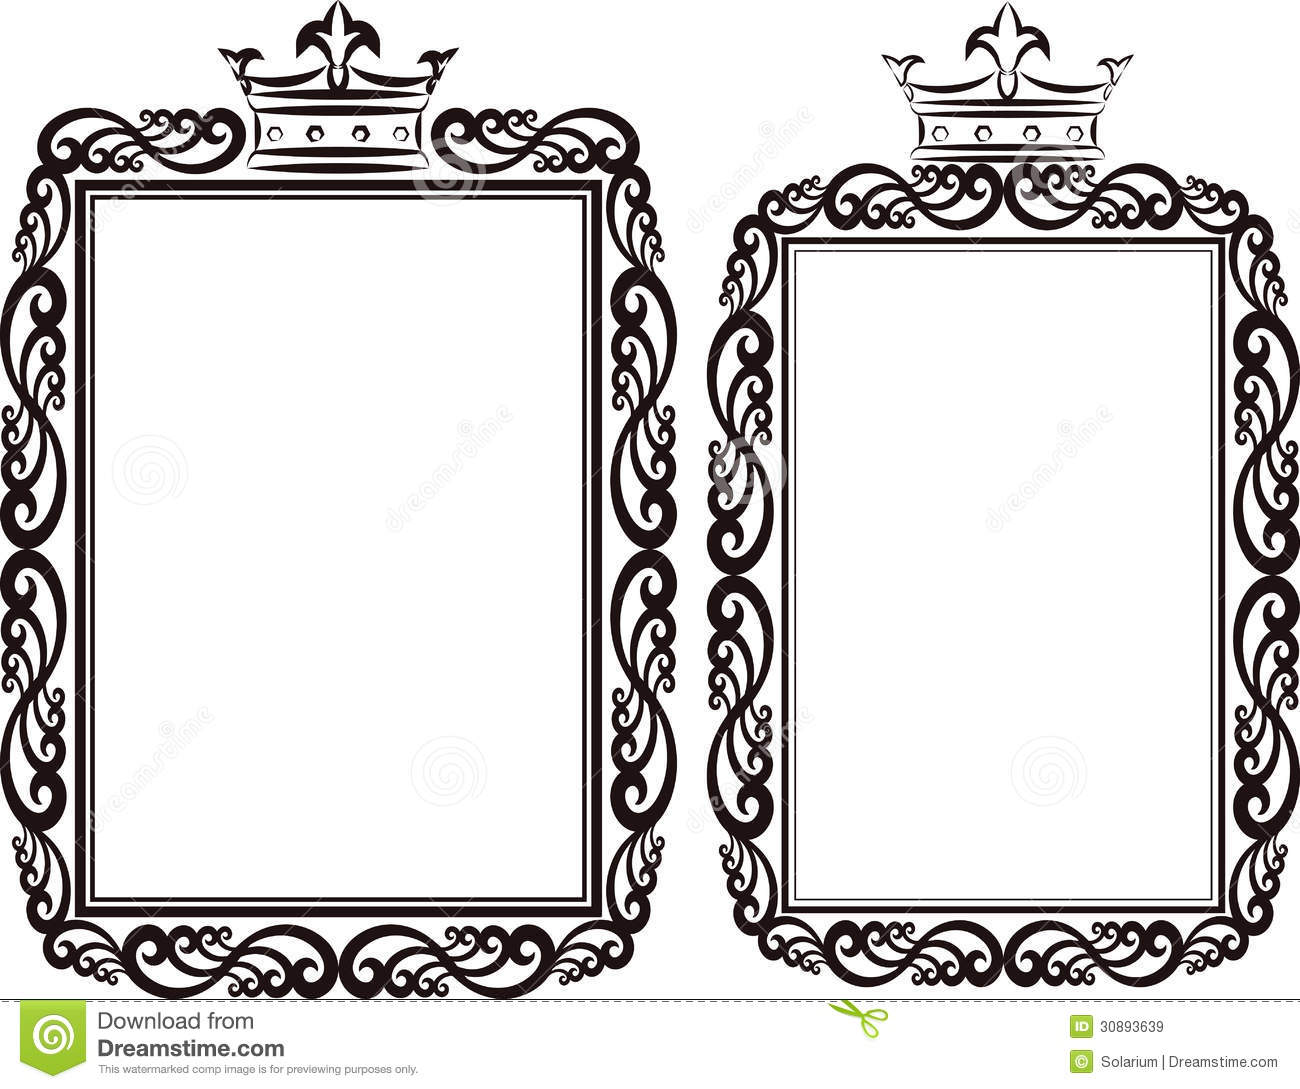 royal border stock vector illustration of contour crowns 30893639 rh dreamstime com border clipart for word border clipart images